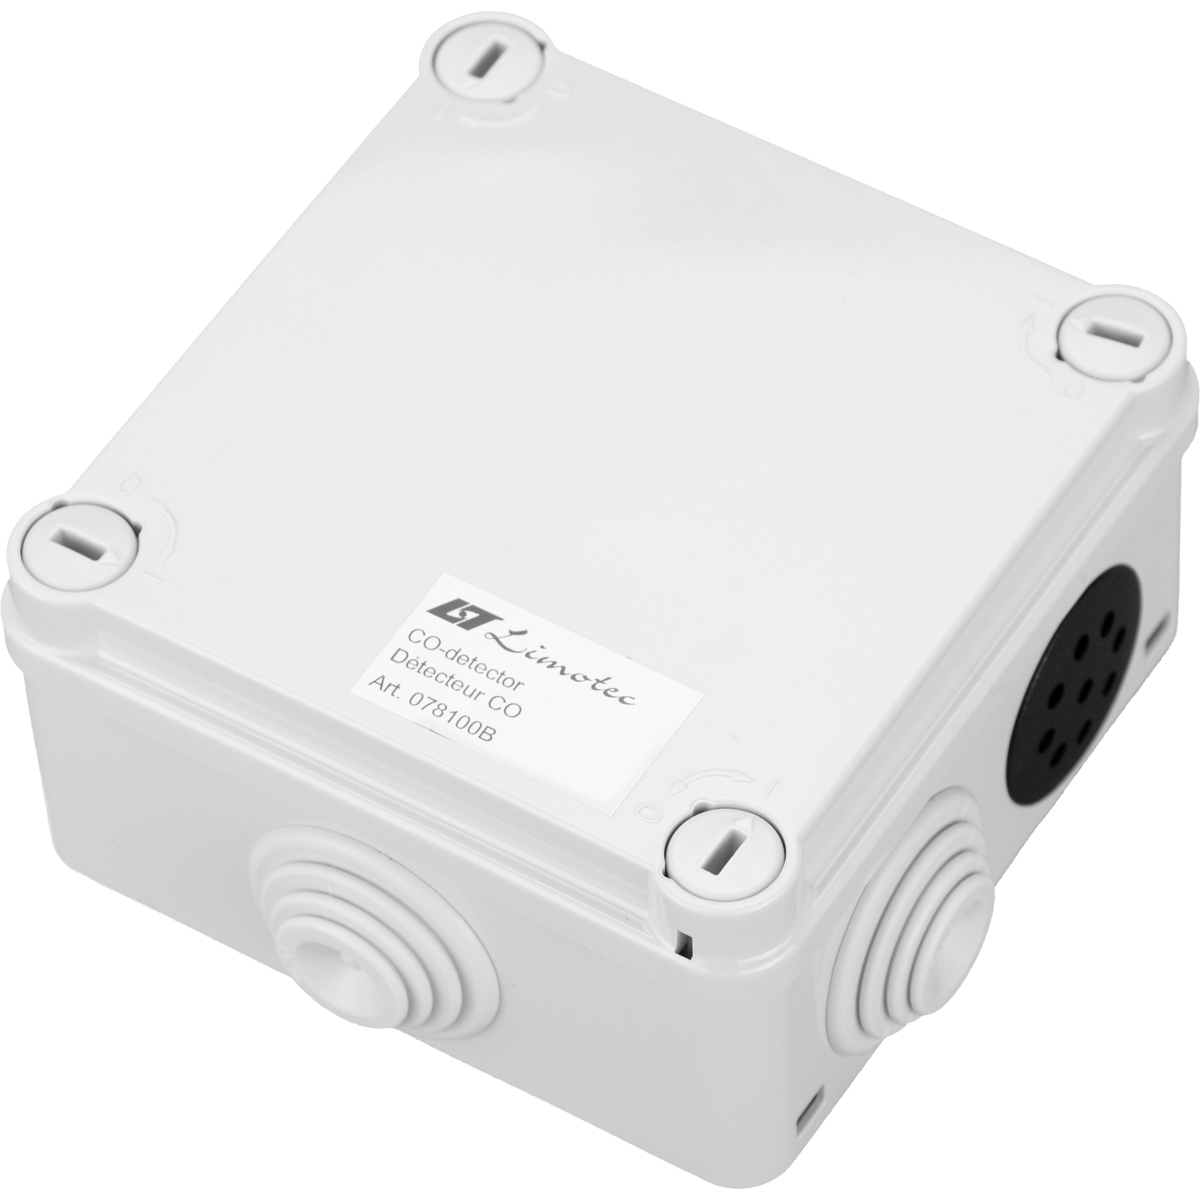 MD780 CO detector